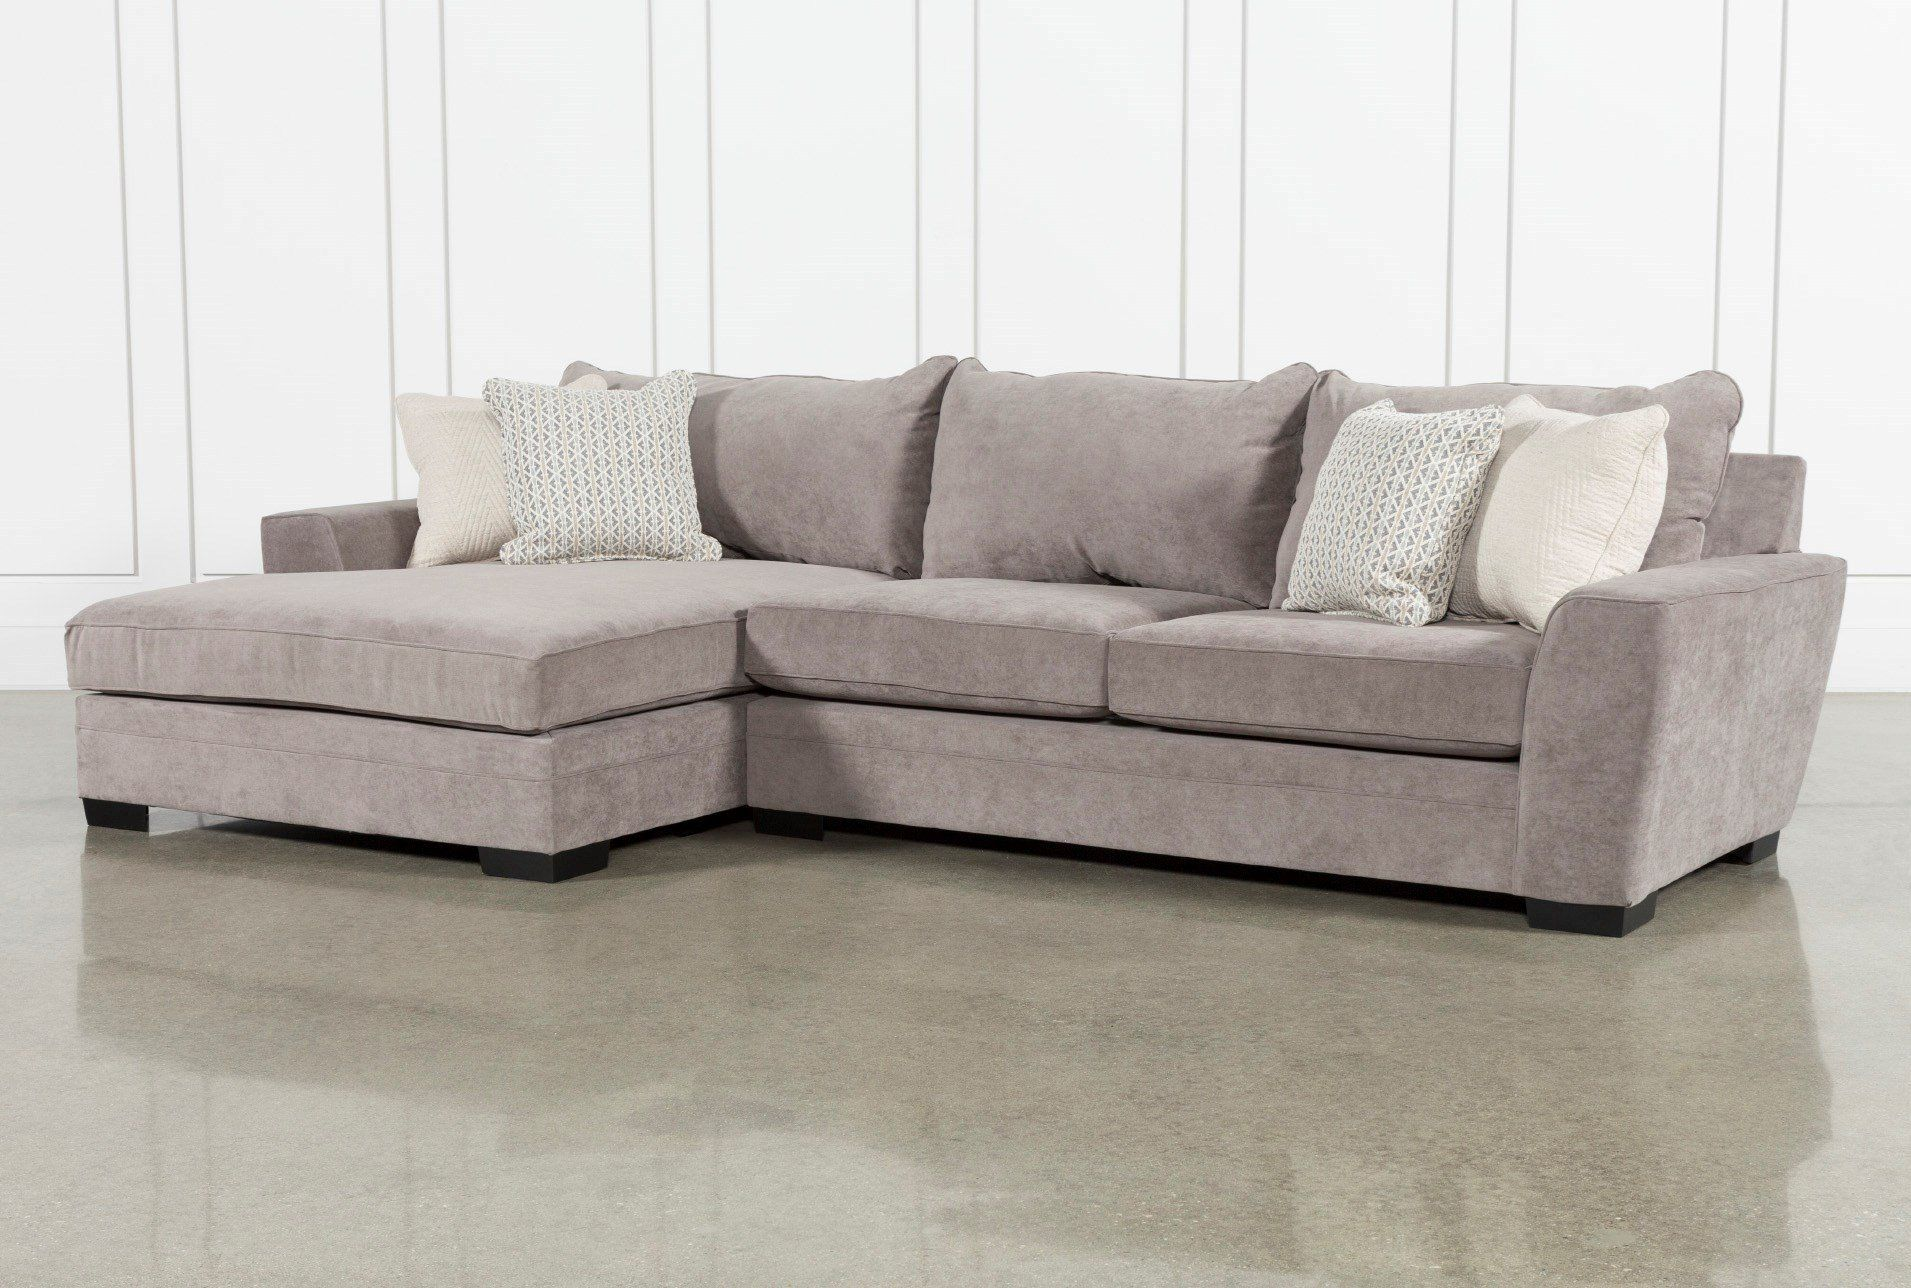 Delano Charcoal 2 Piece Sectional With Left Arm Facing Chaise Sectional Sofa Cool Couches Furniture